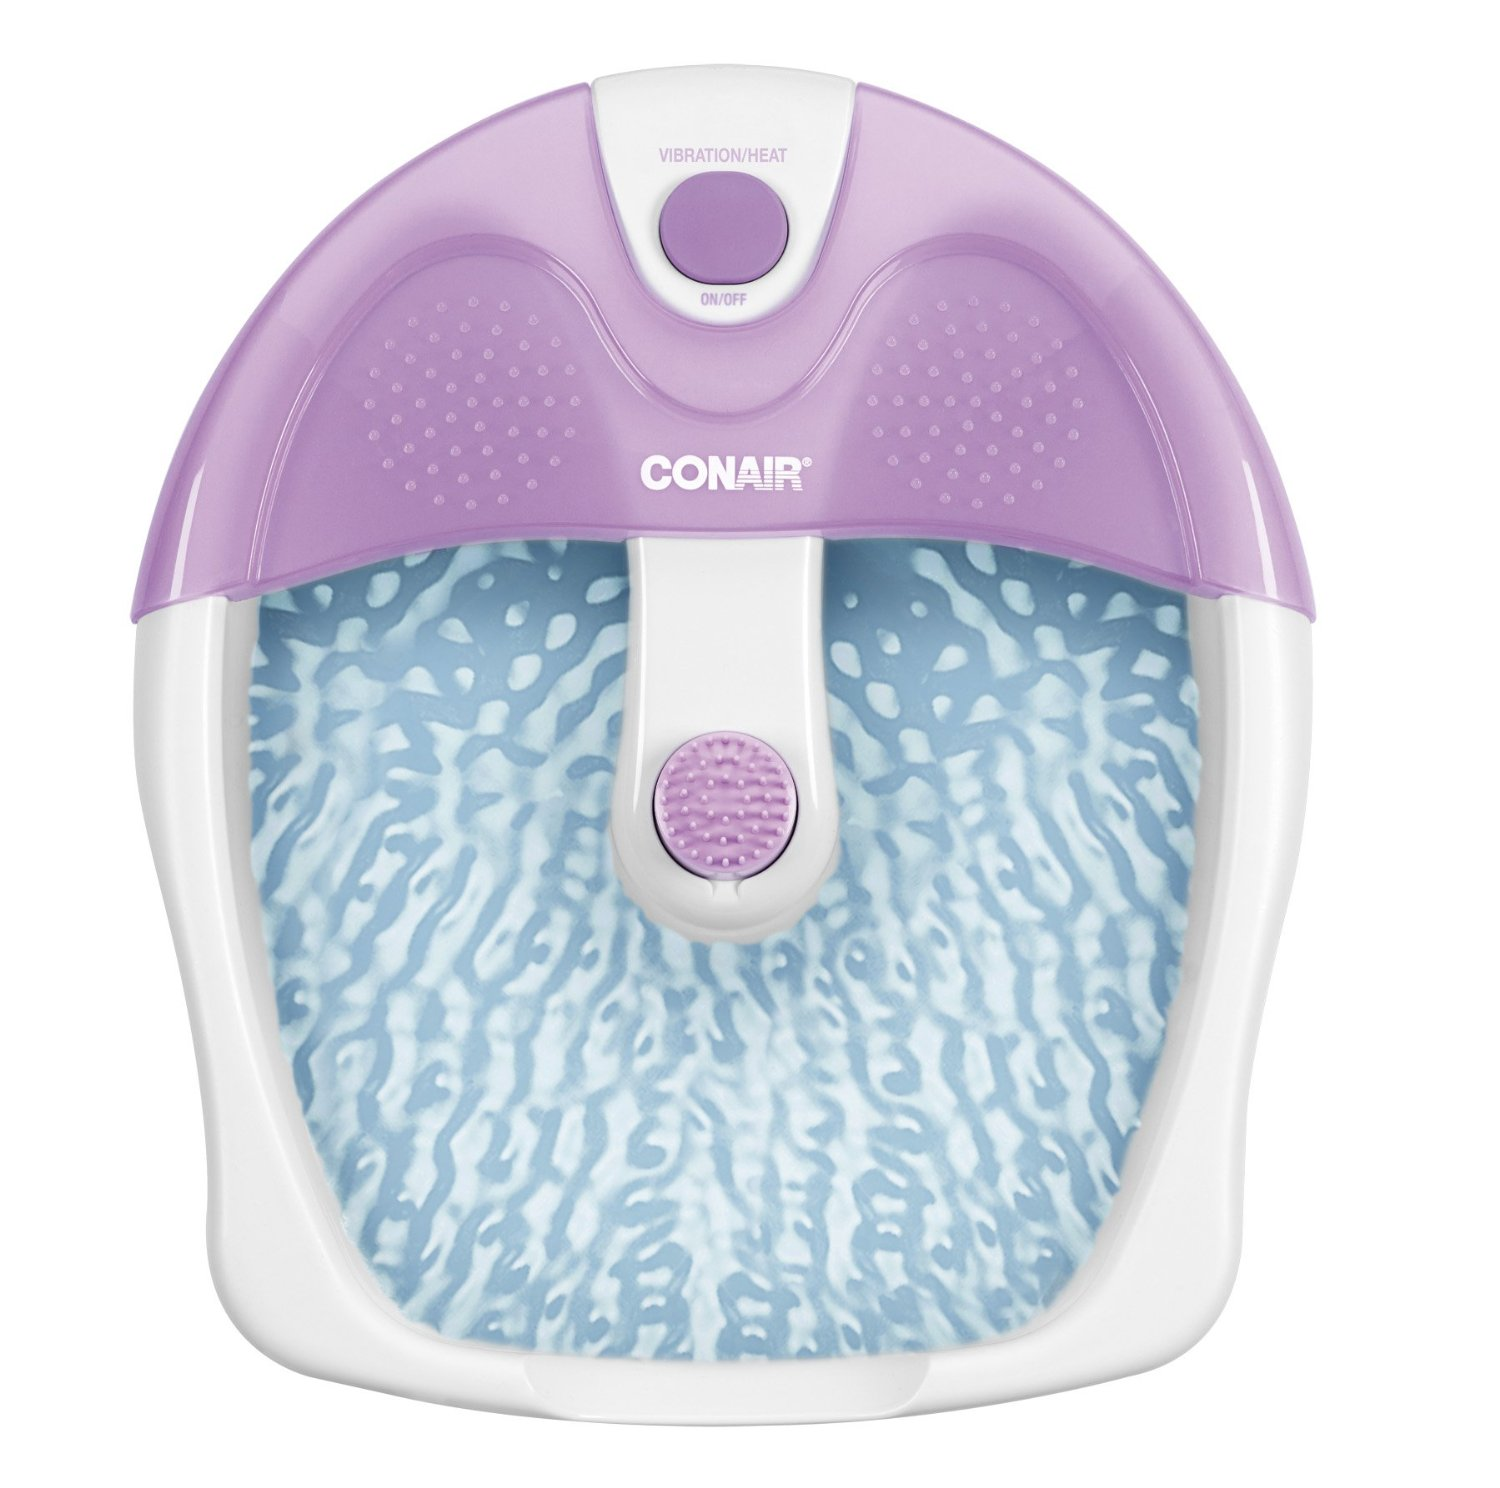 conair foot spa with vibration